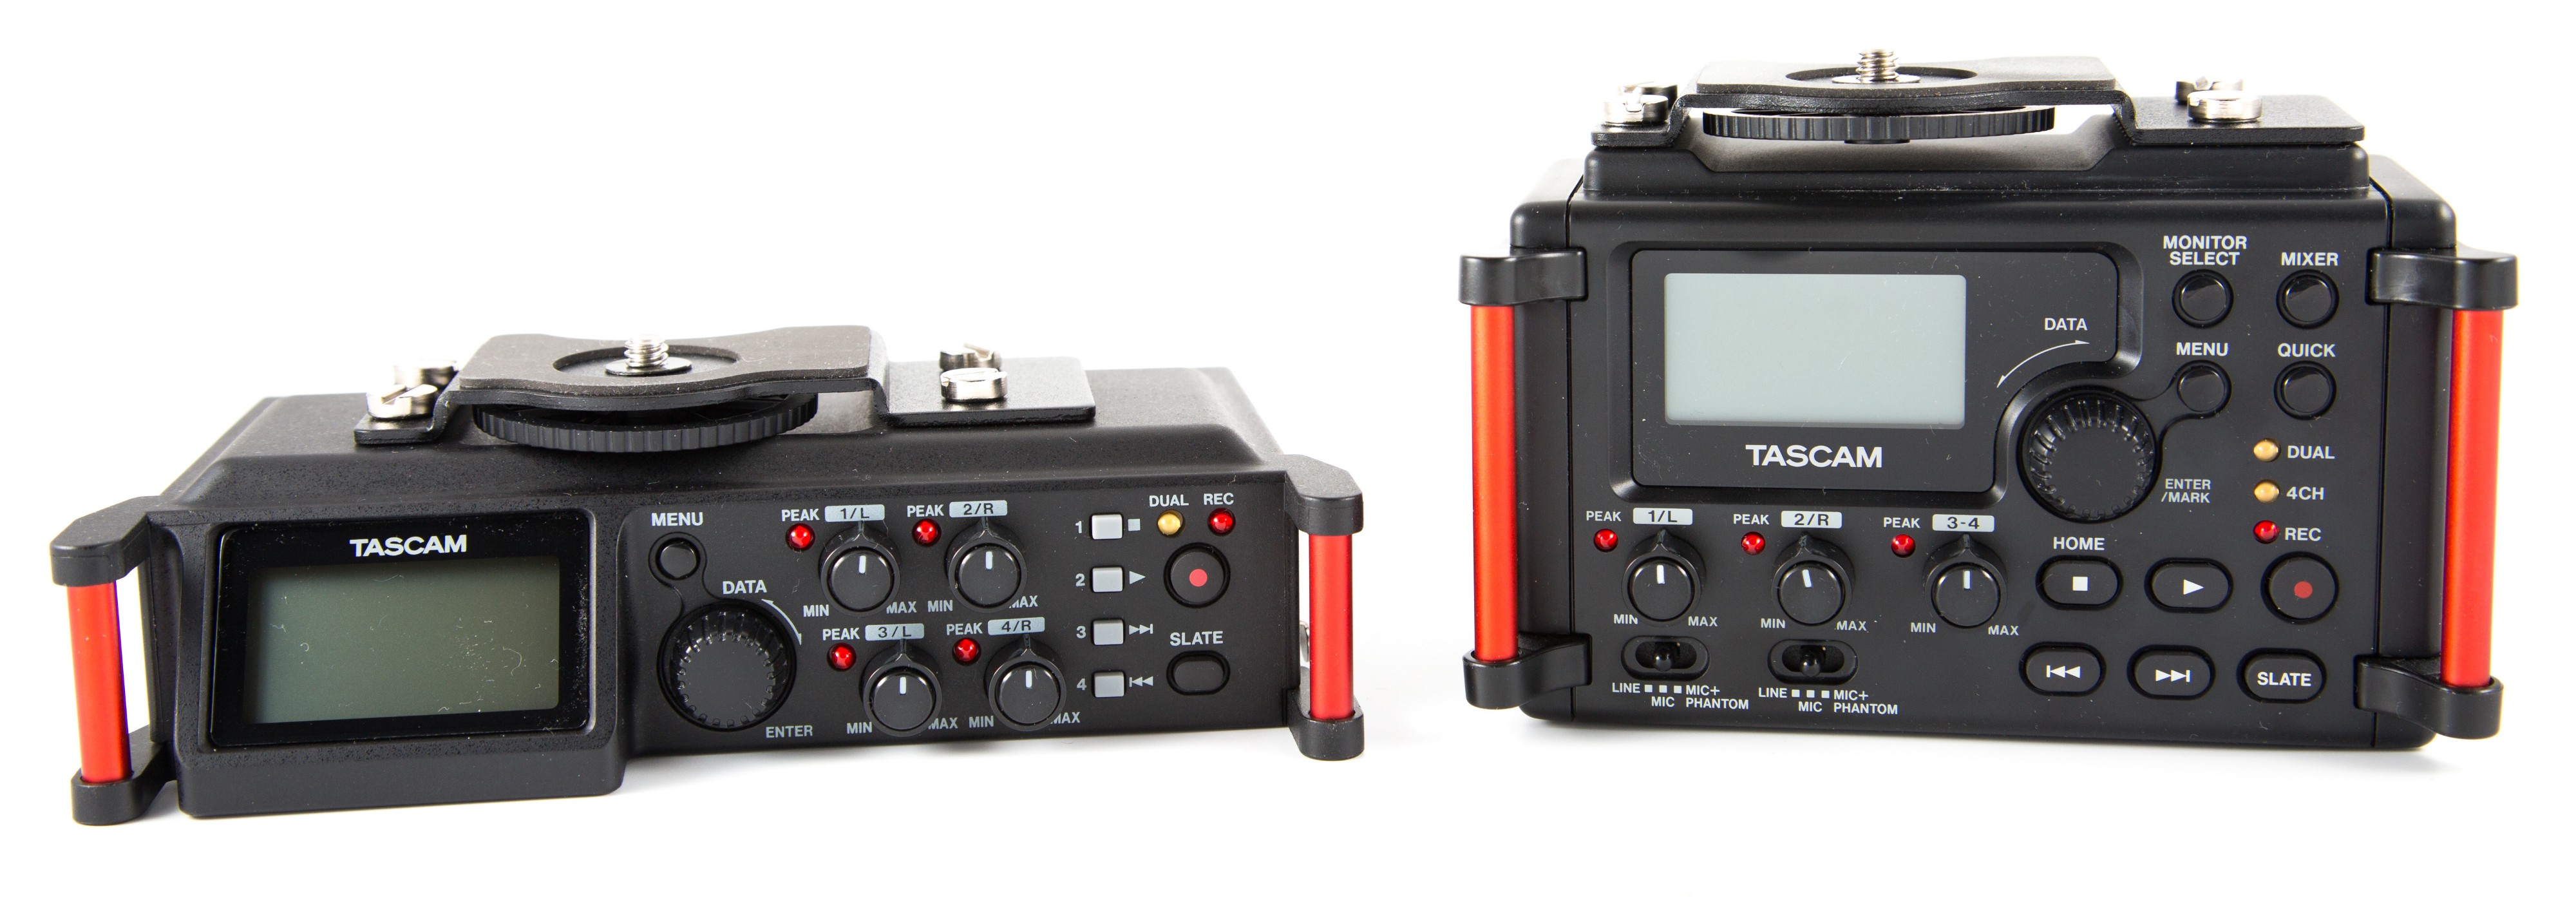 Affordable audio recorders comparison: Tascam DR-60D MKII vs